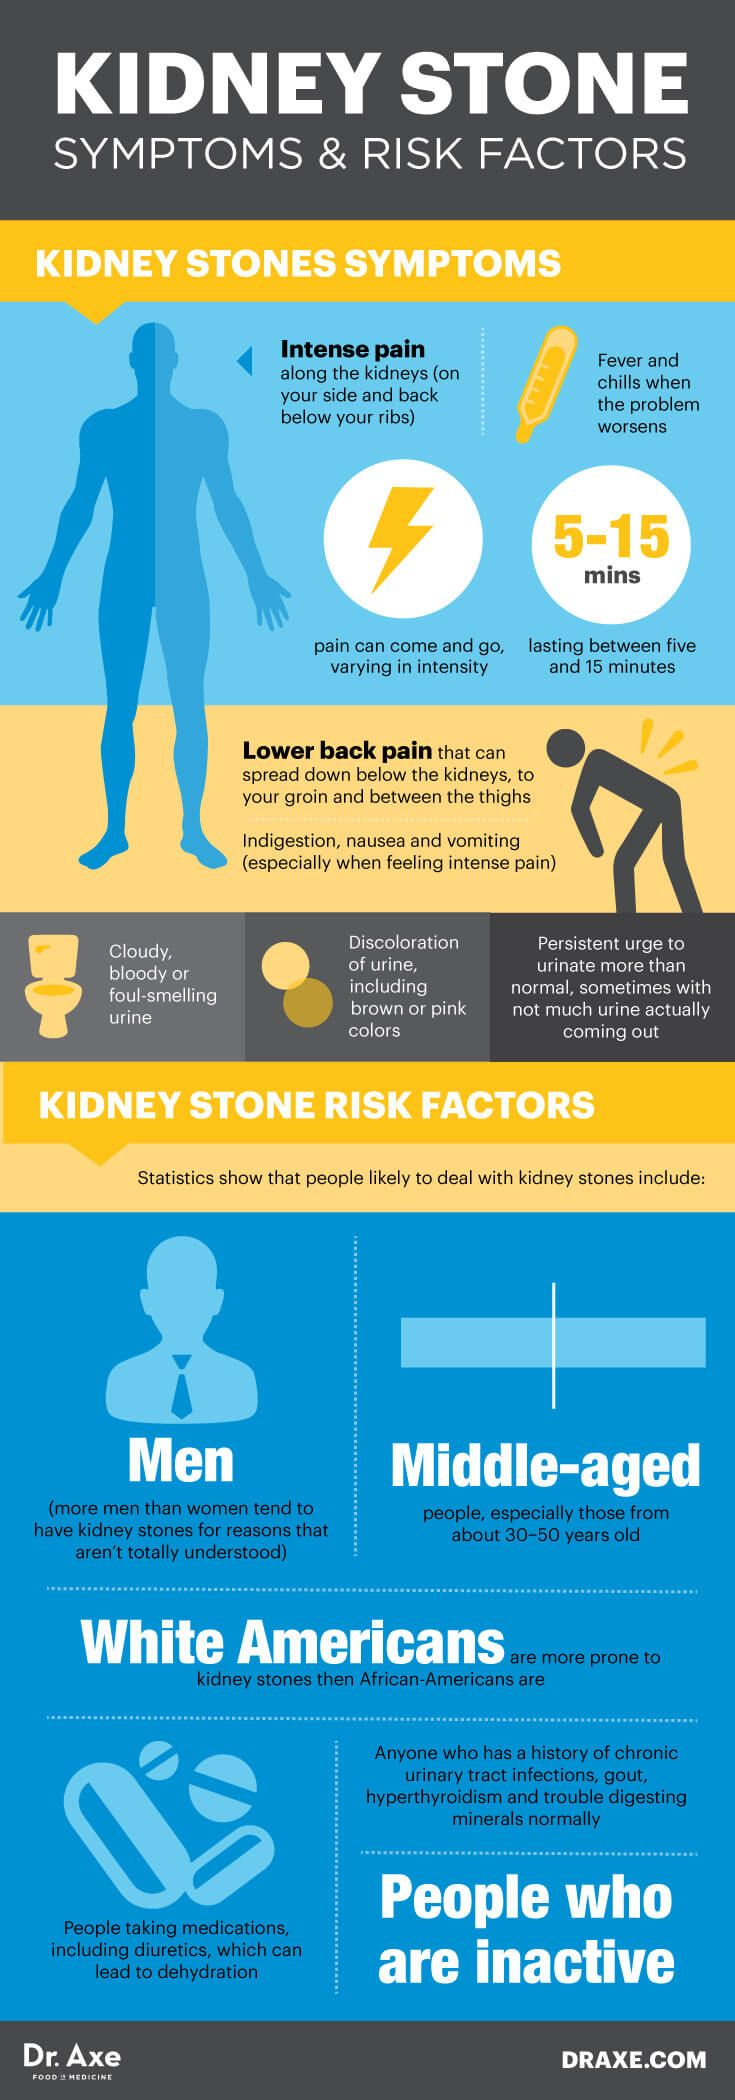 1 reason and 13 factors of kidney stones 22